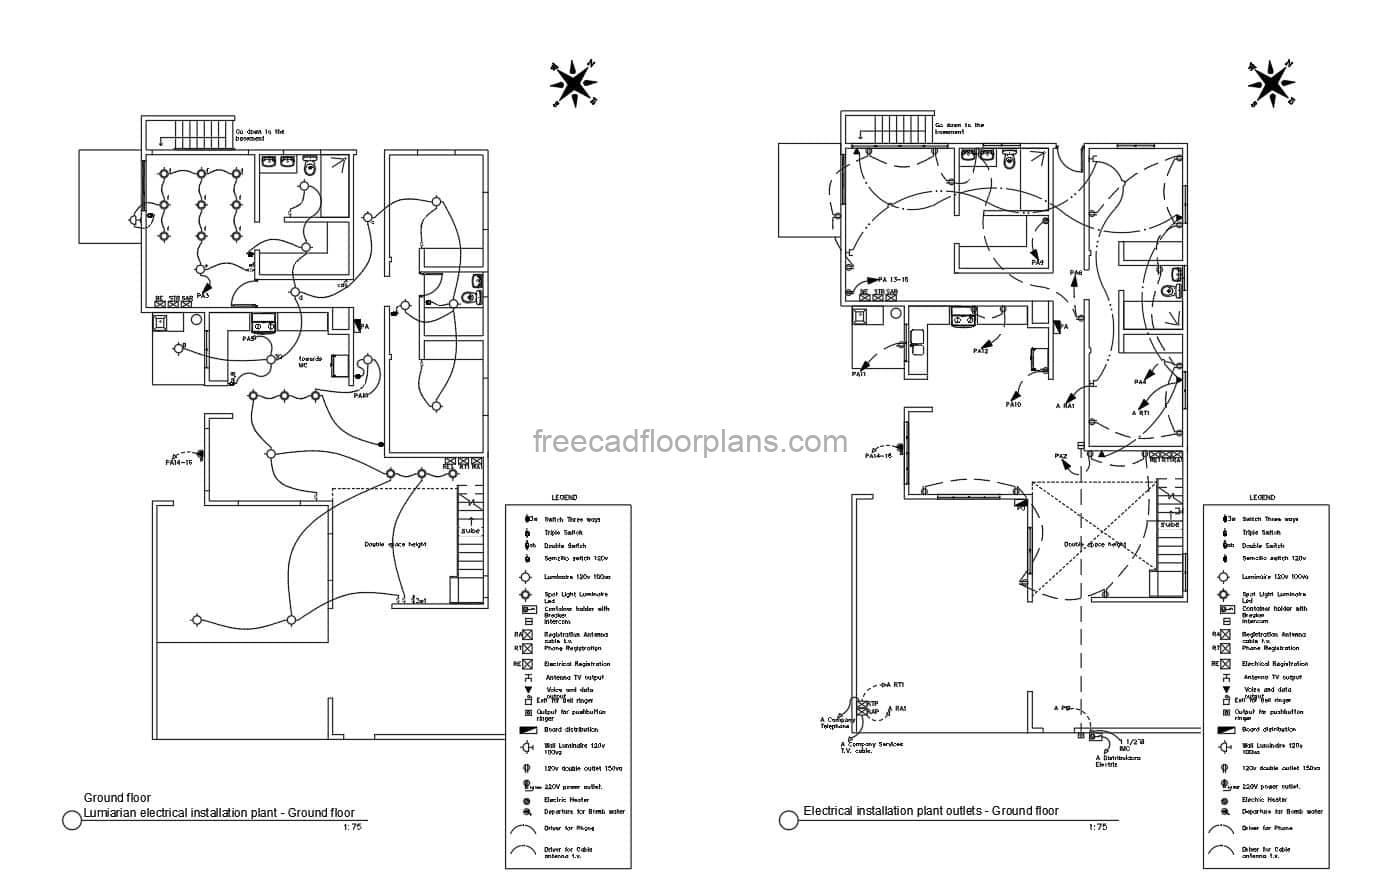 Complete electrical plan of a two level residence with all the details, electrical installations of light fixtures, outlets, calculations and electrical diagrams and panels for each level, plan in DWG AutoCAD format.